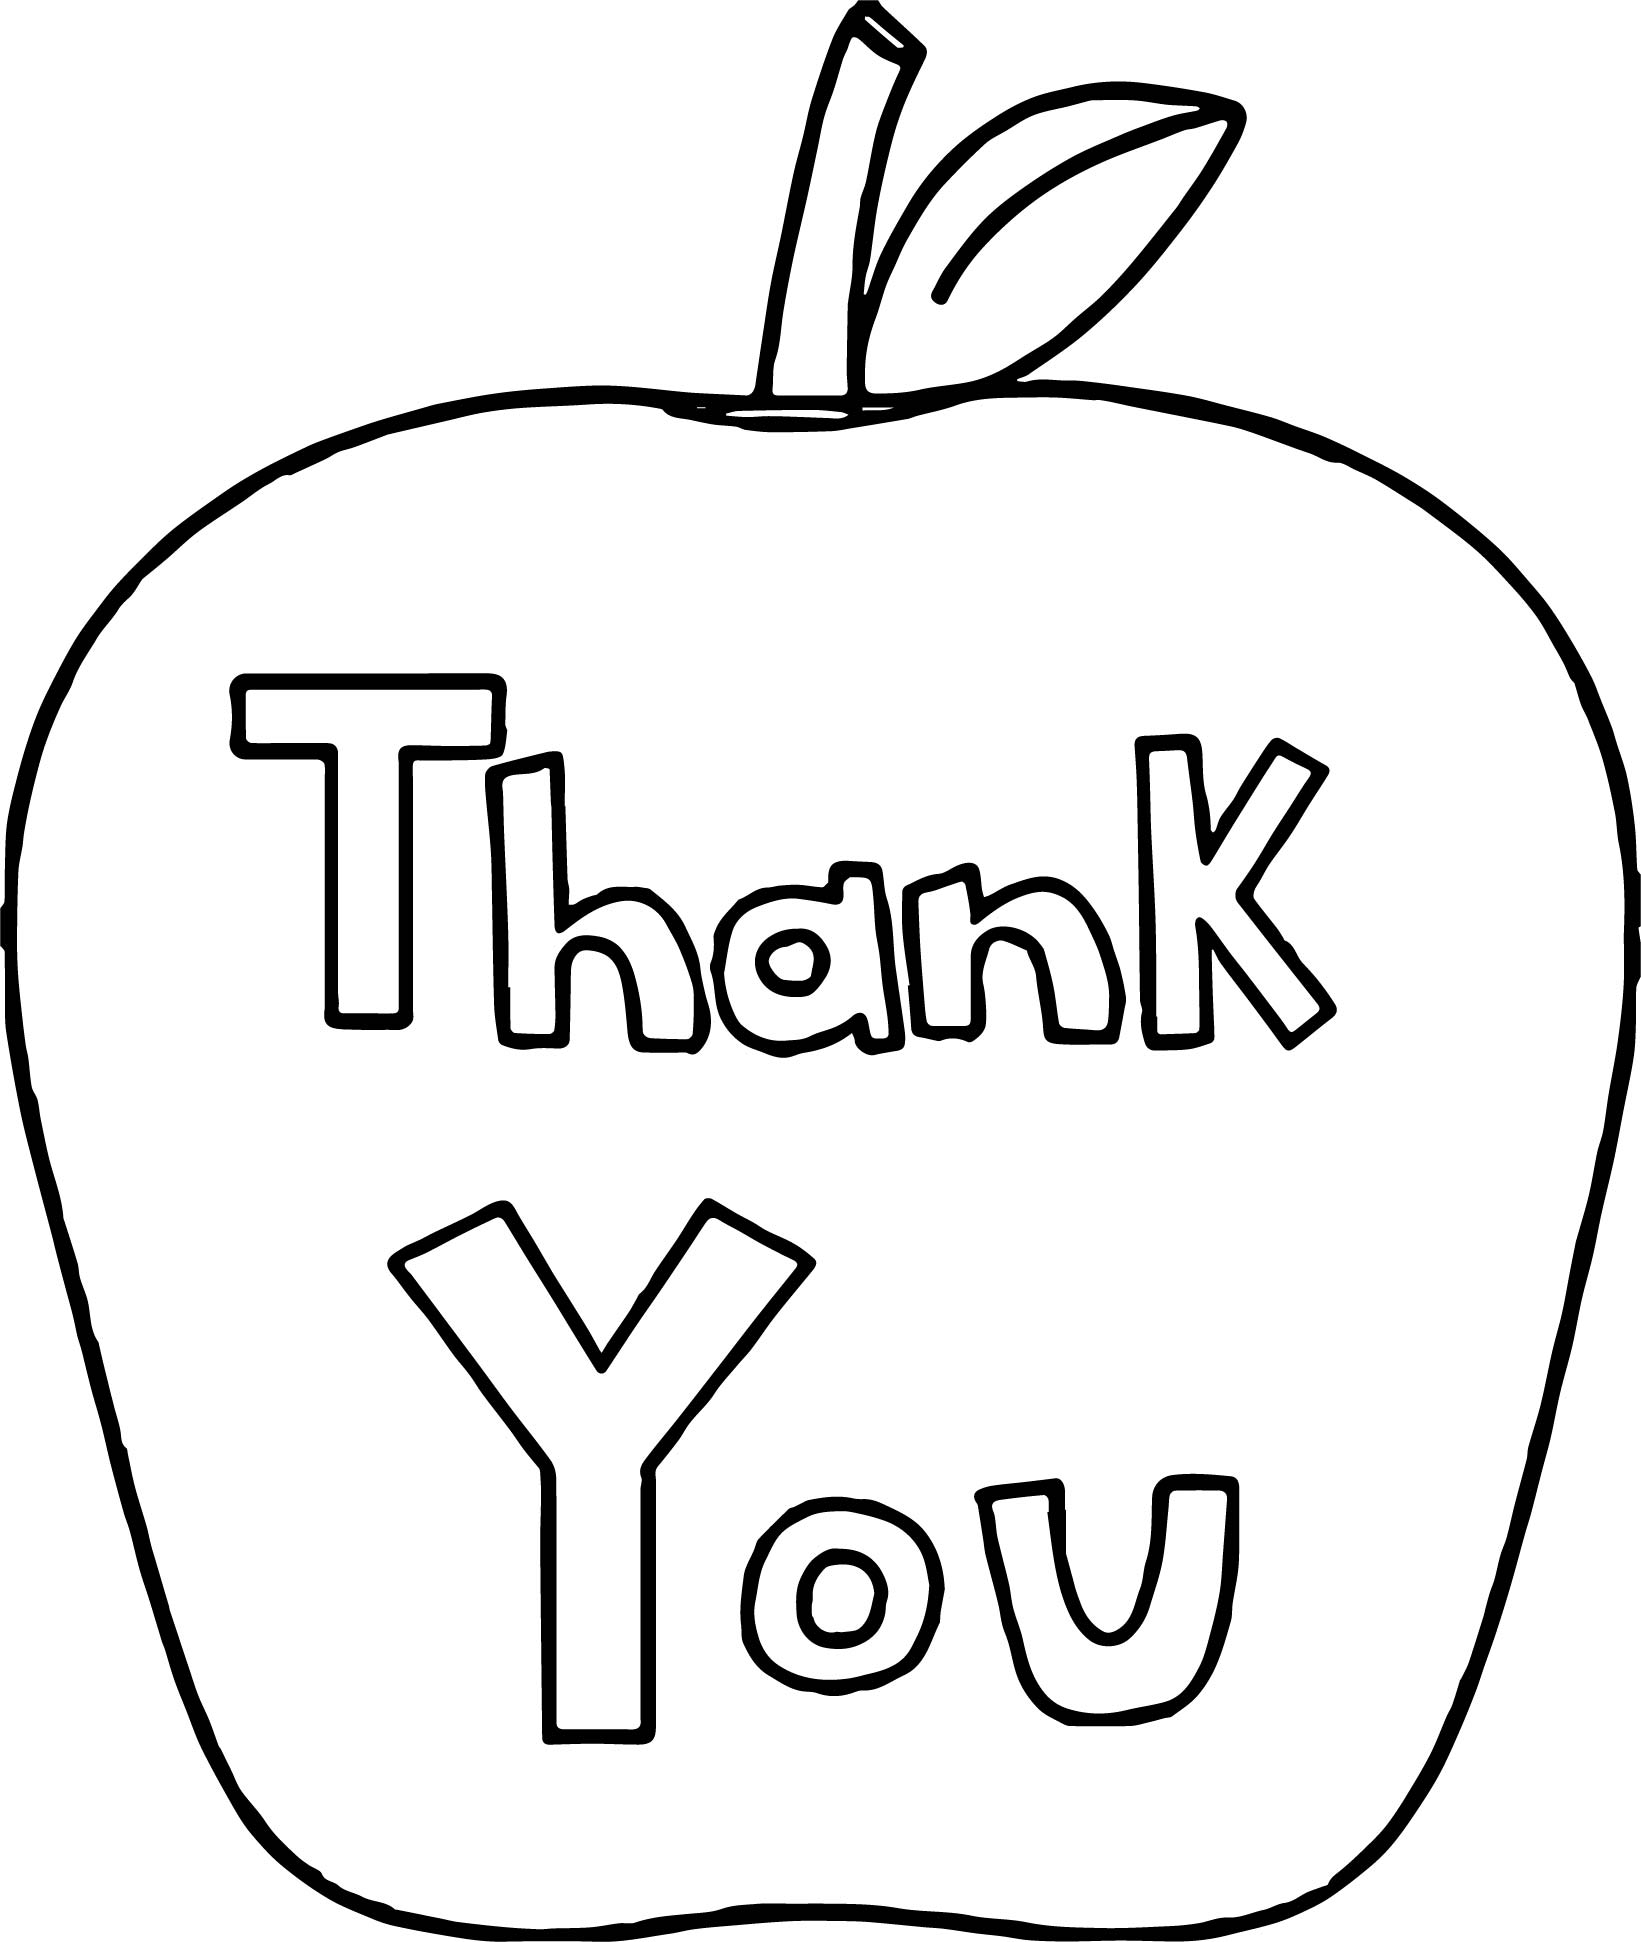 1641x1942 Thank You Awesome Apple Coloring Page Wecoloringpage